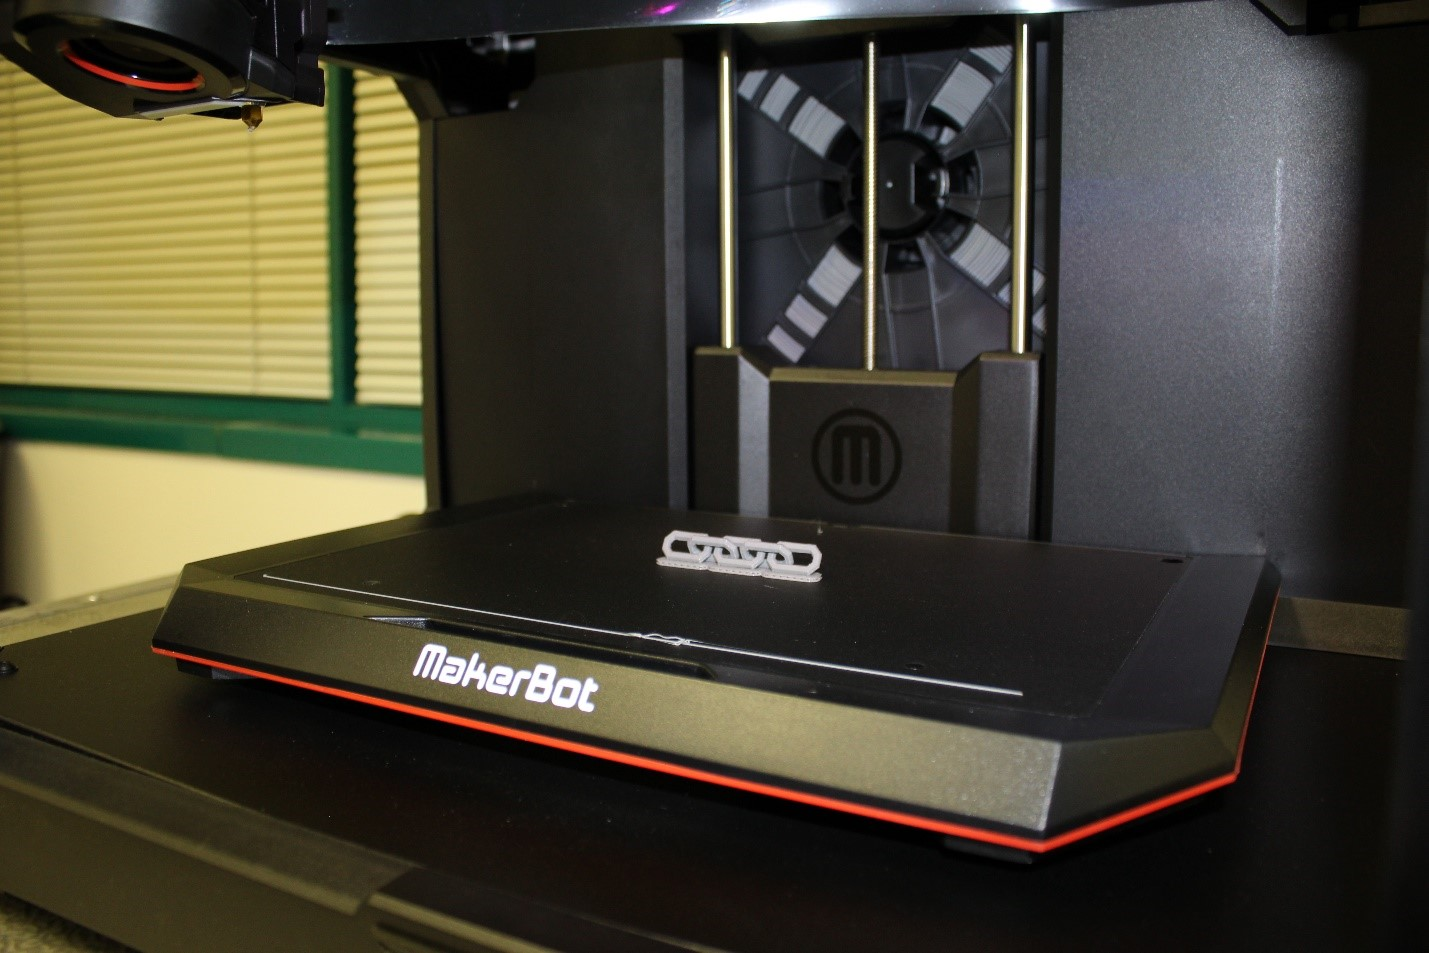 5th Generation MakerBot Replicator+